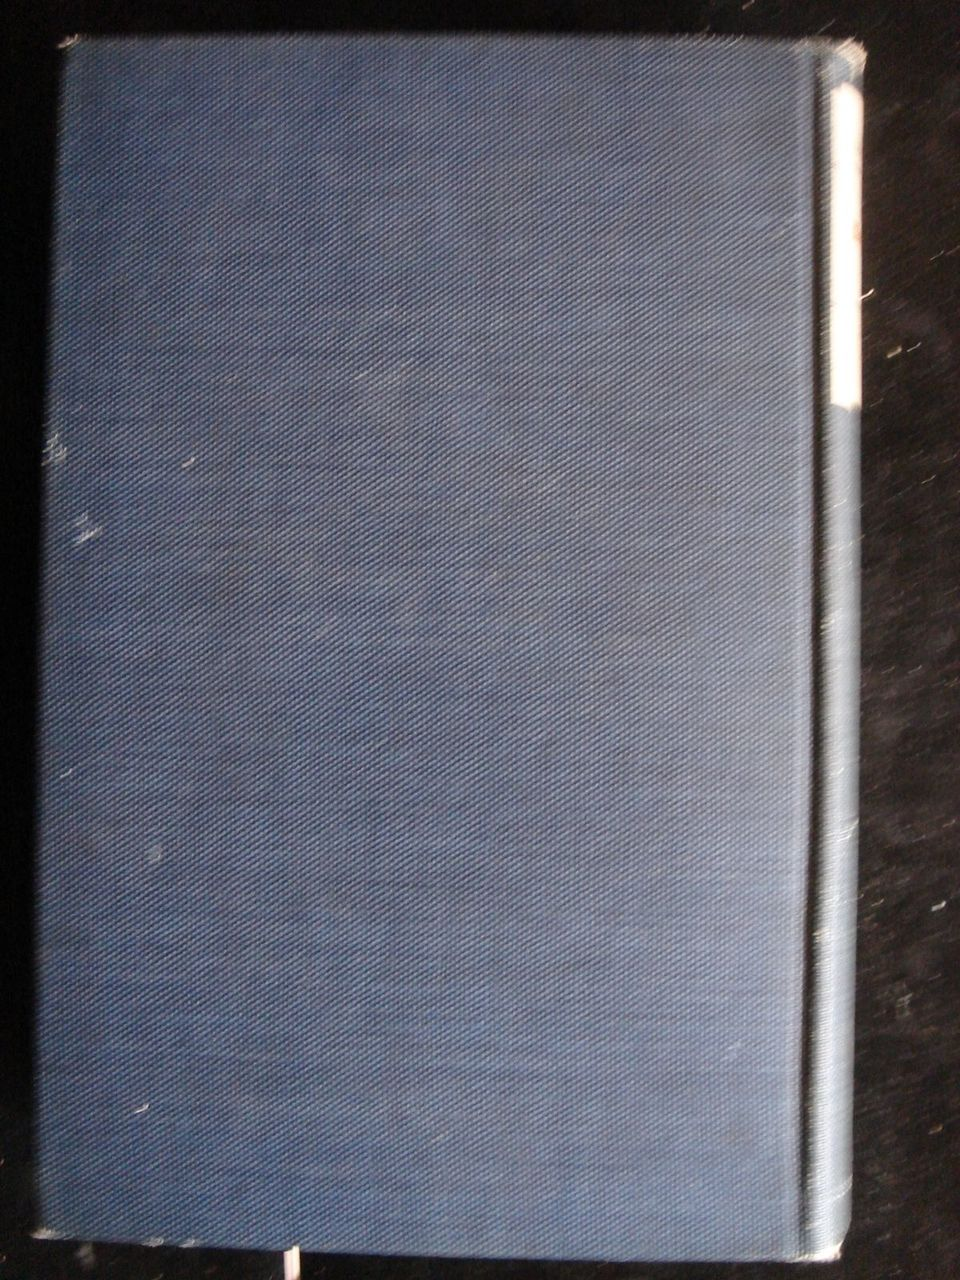 ENGLISH PRISONS [Vol 3], by Major Arthur Griffiths - c.1910 [Ltd Ed - Grolier]